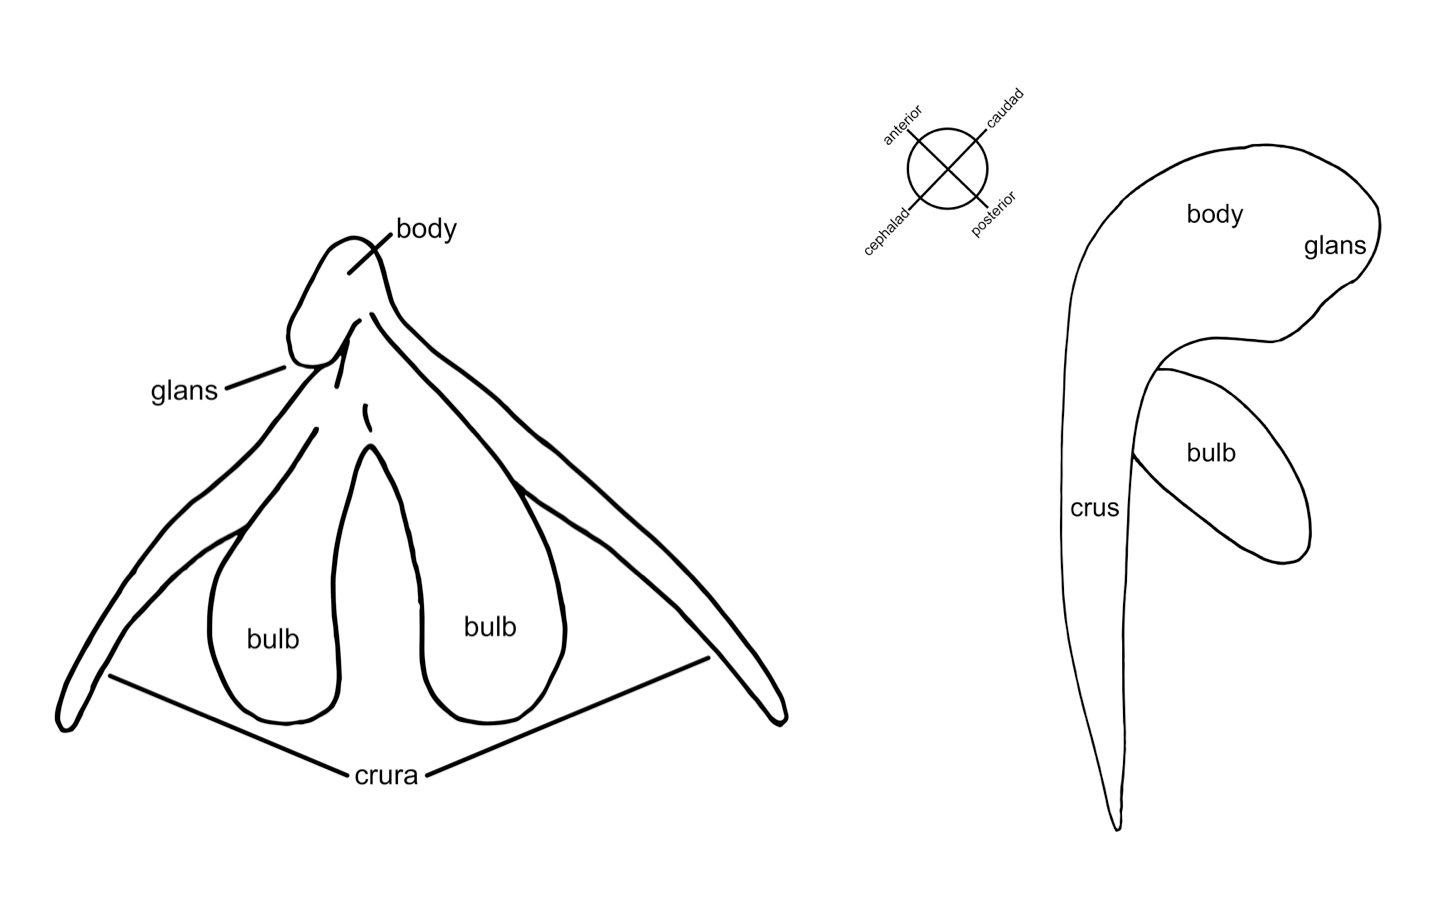 why the clitoris doesn t get the attention it deserves and why Male Reproductive System Diagram No-Label all four parts of the clitoris are visible in this view the glans external portion the body the bulbs and the crura